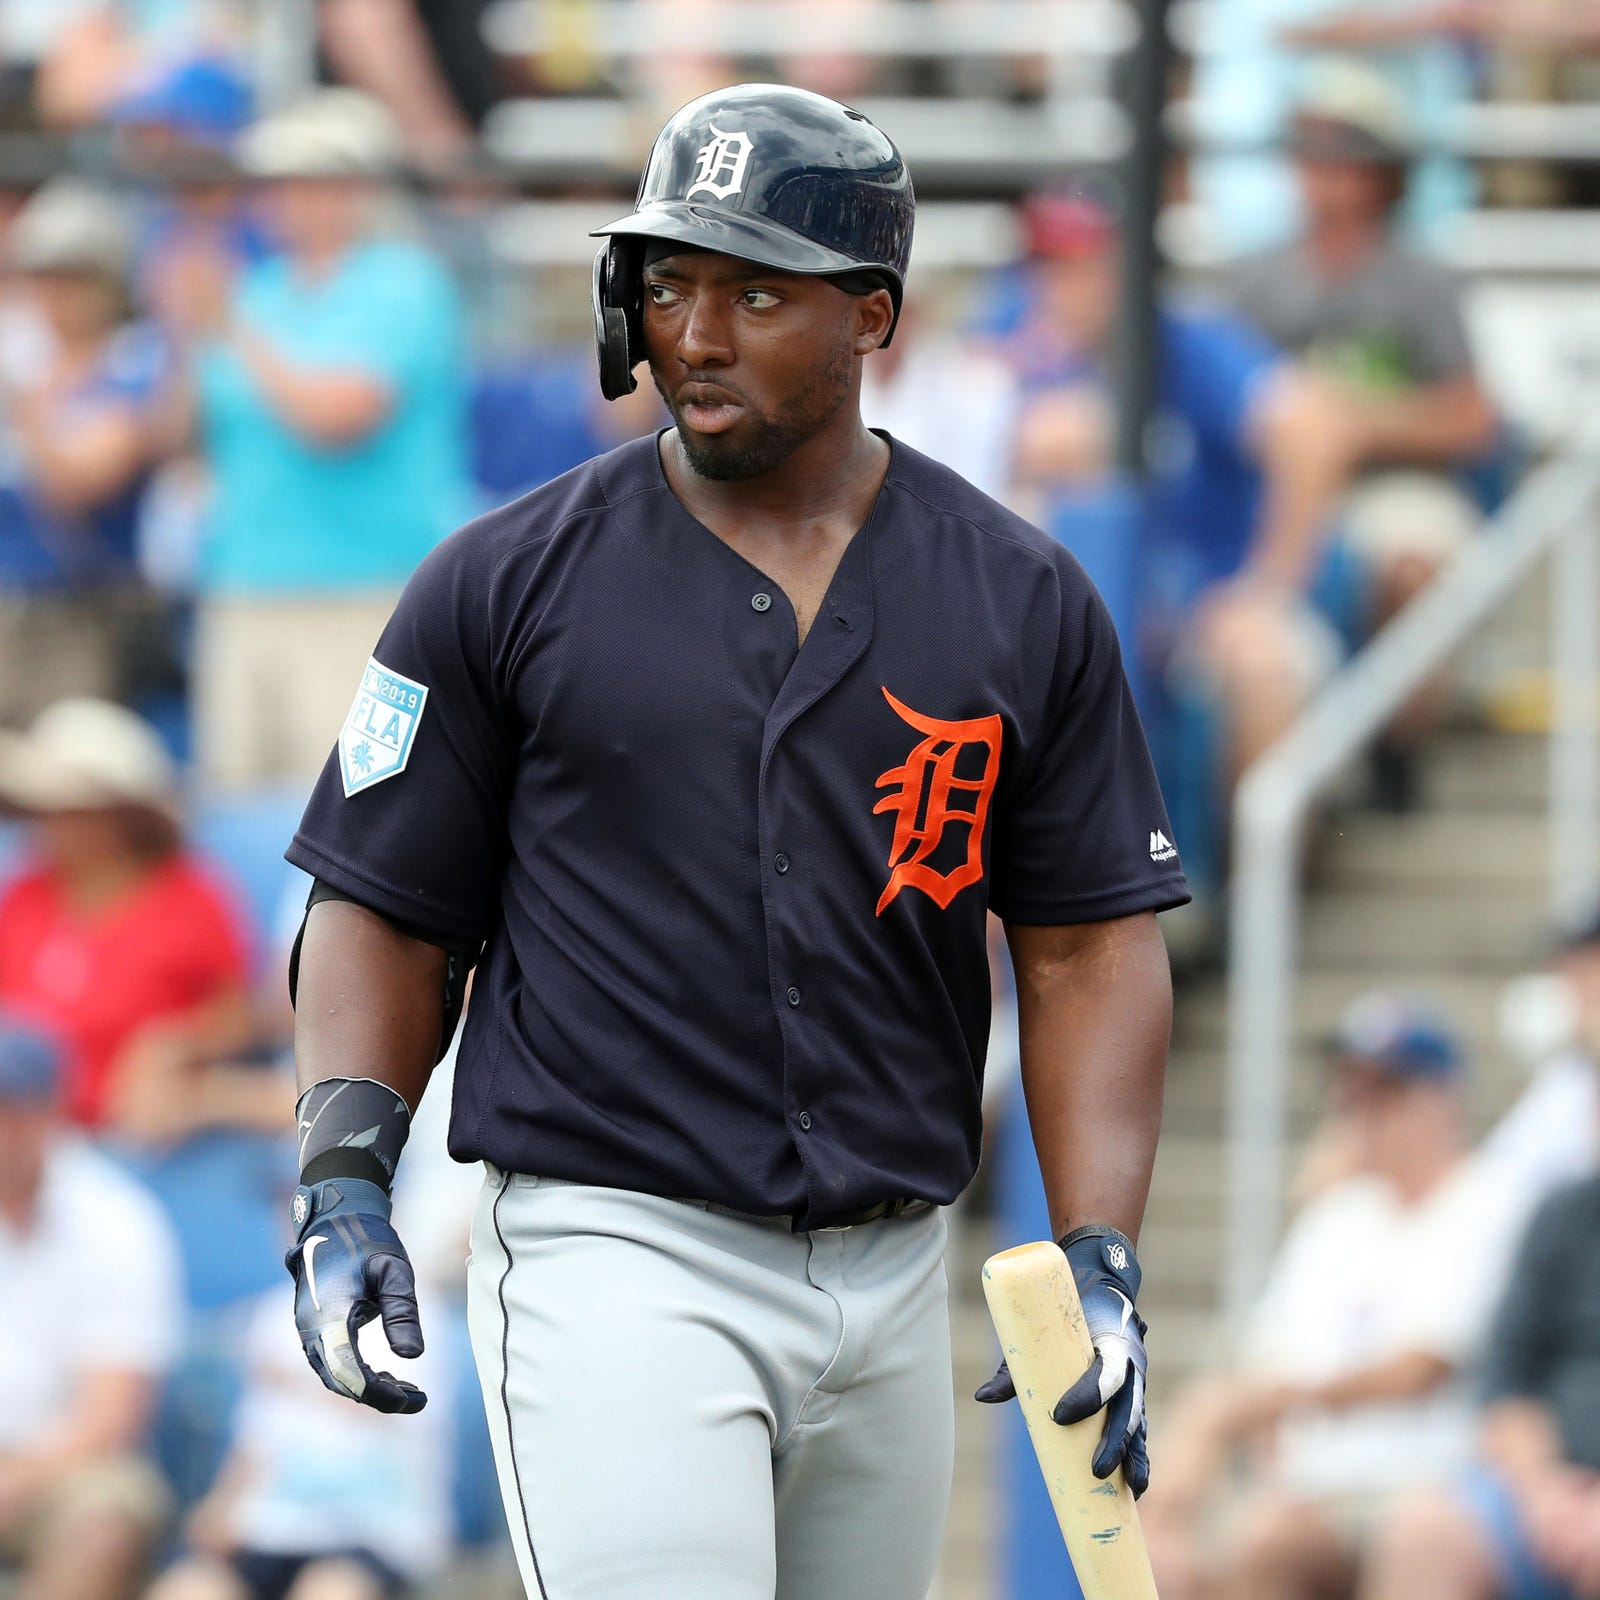 Letters from Detroit Tigers spring training: A fun team with no jerks